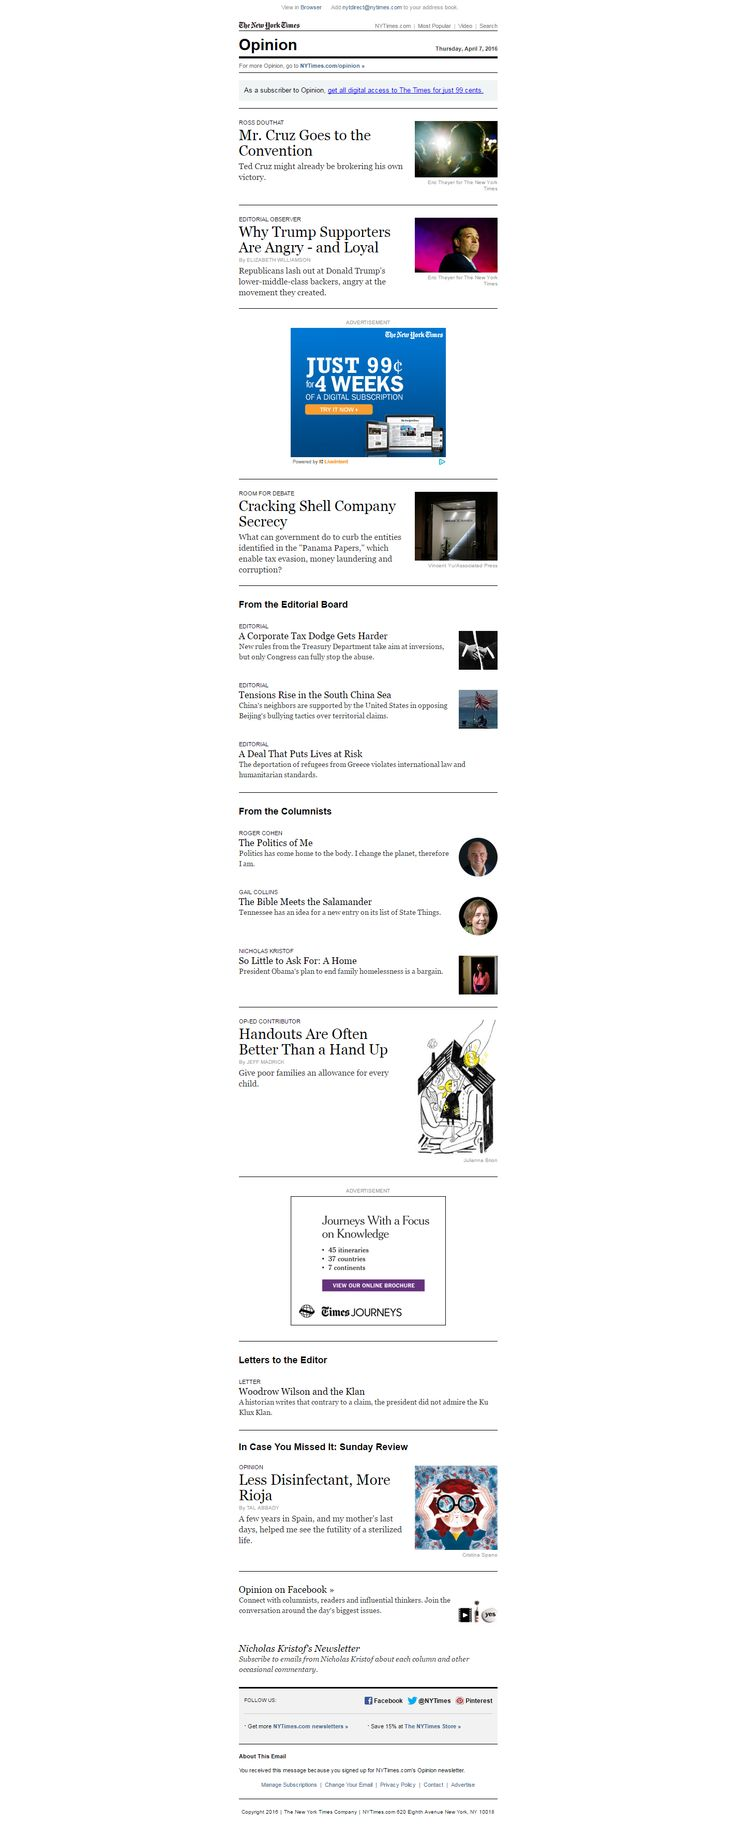 Newsletter The New York Times